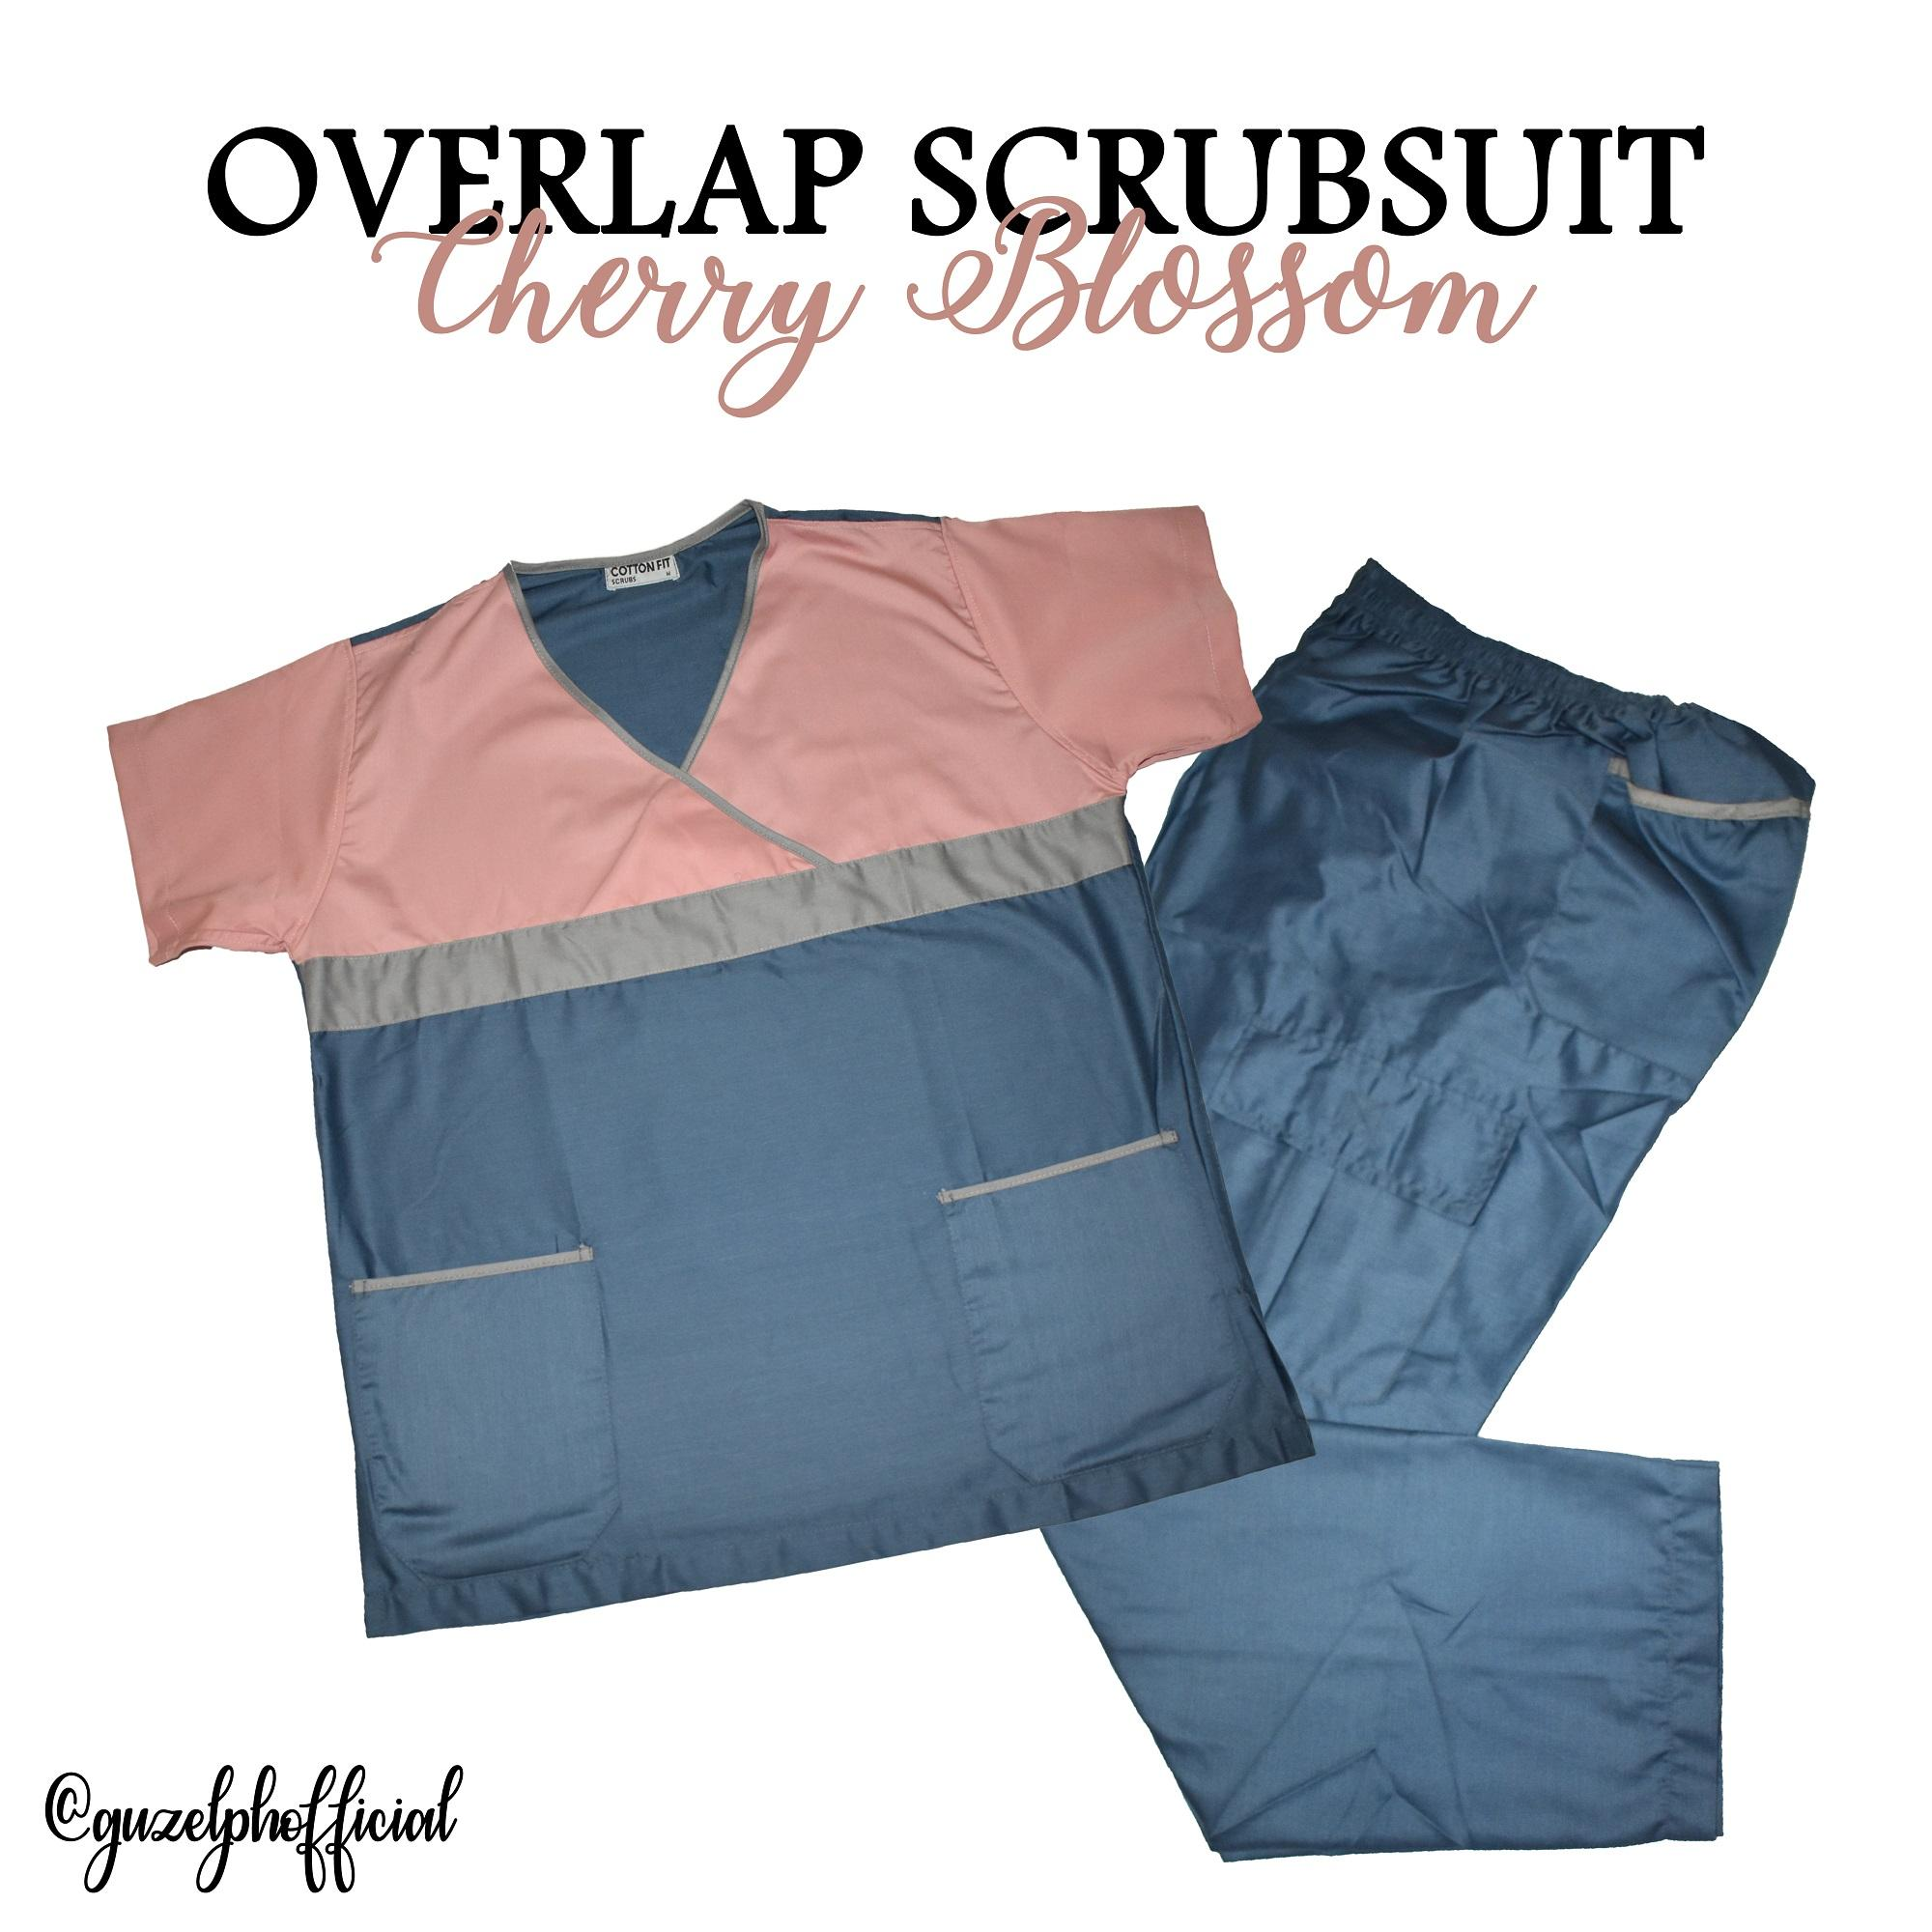 Scrub Suit For Sale Scrubs Prices Brands Review In Philippines